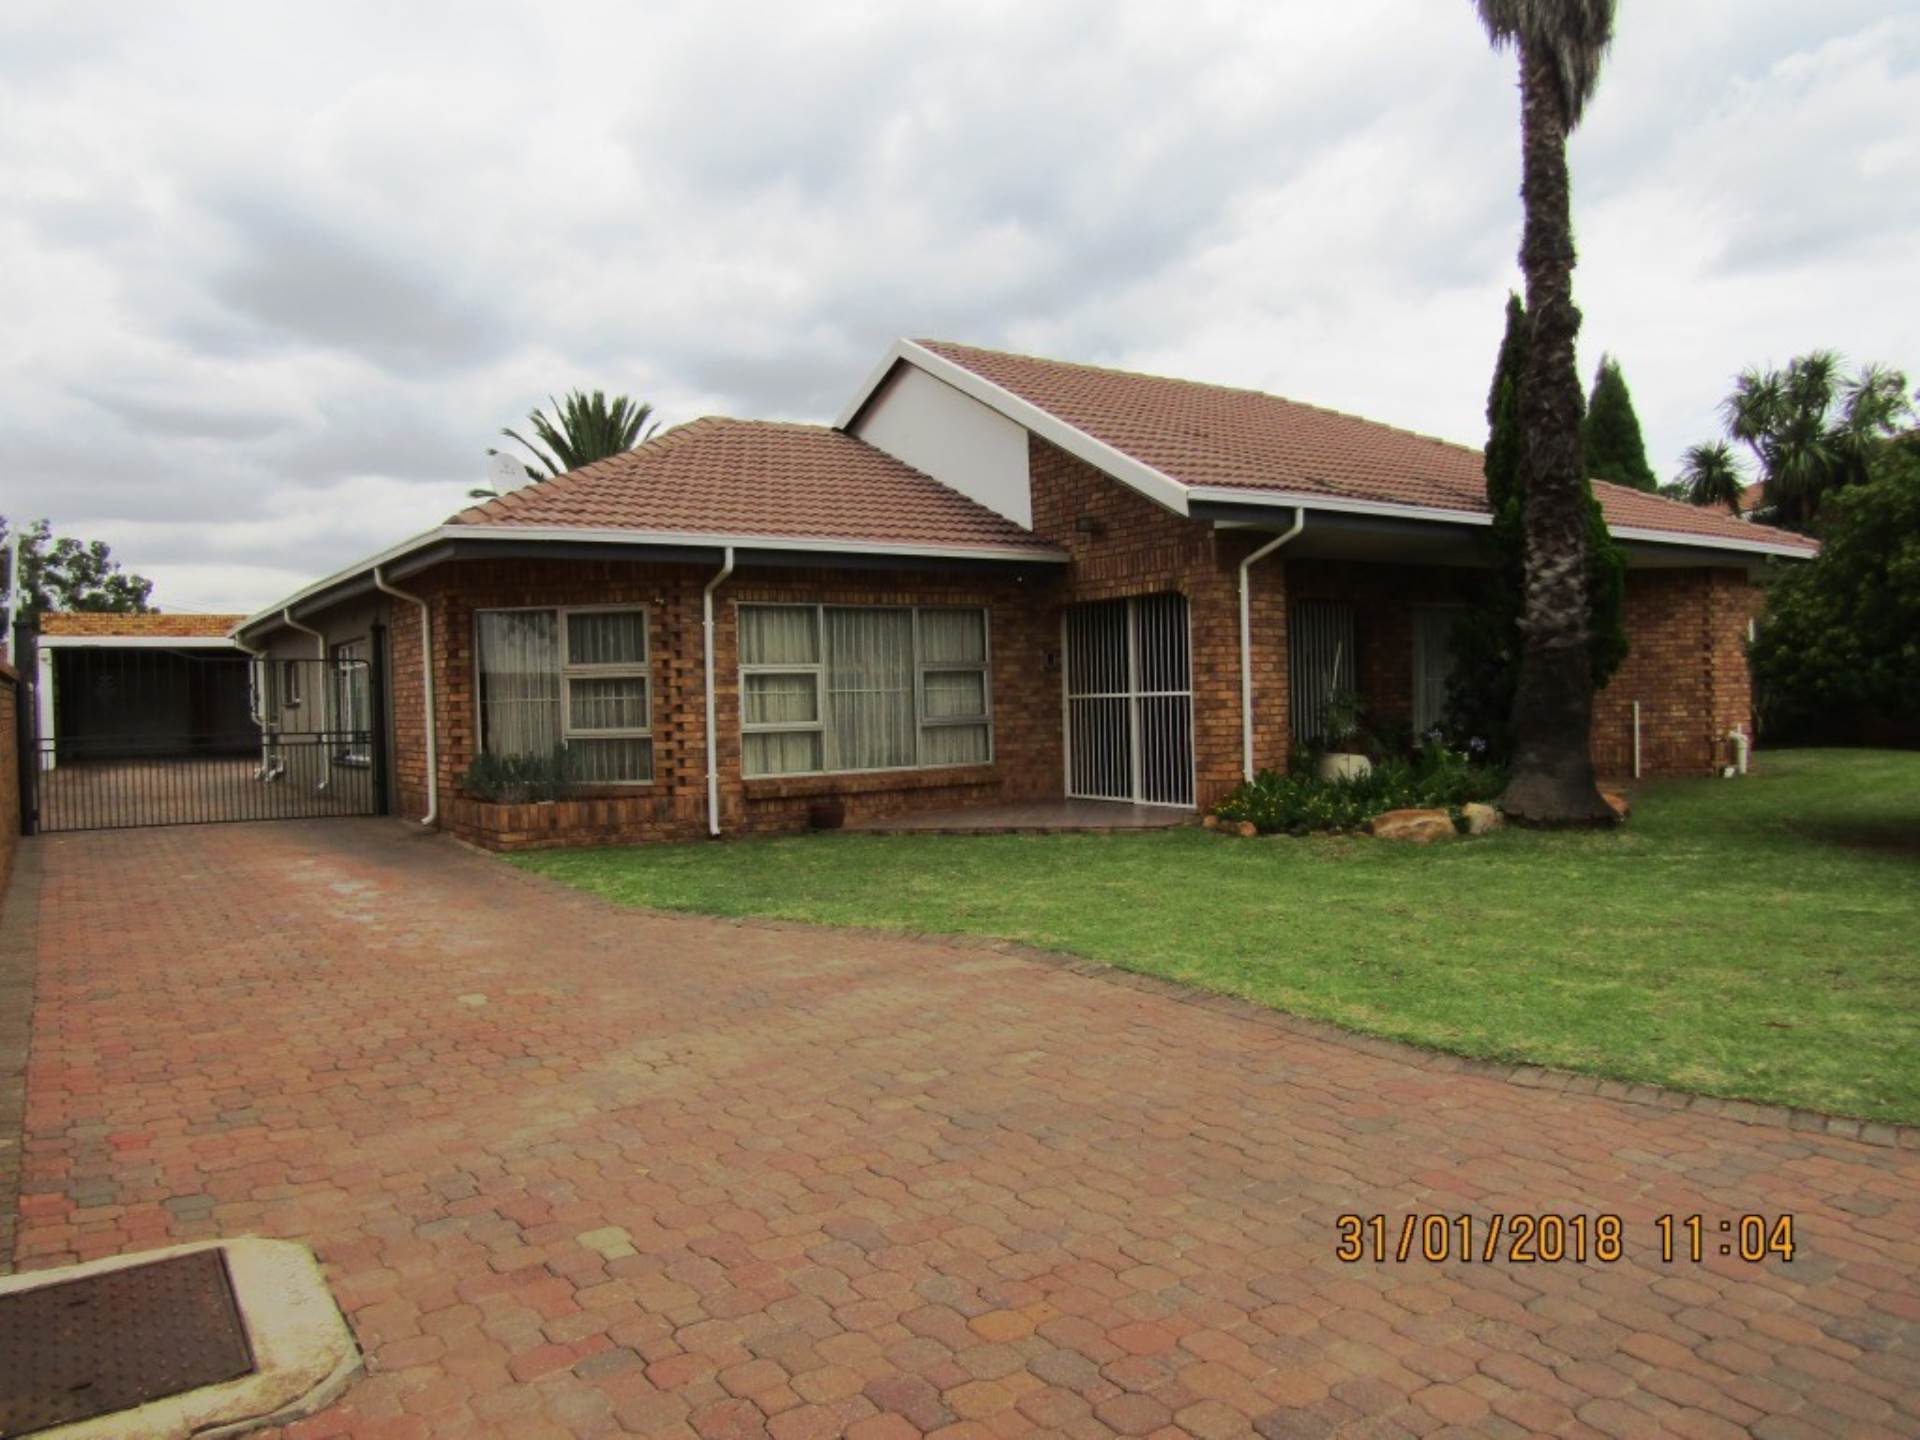 4 BedroomHouse For Sale In Daggafontein